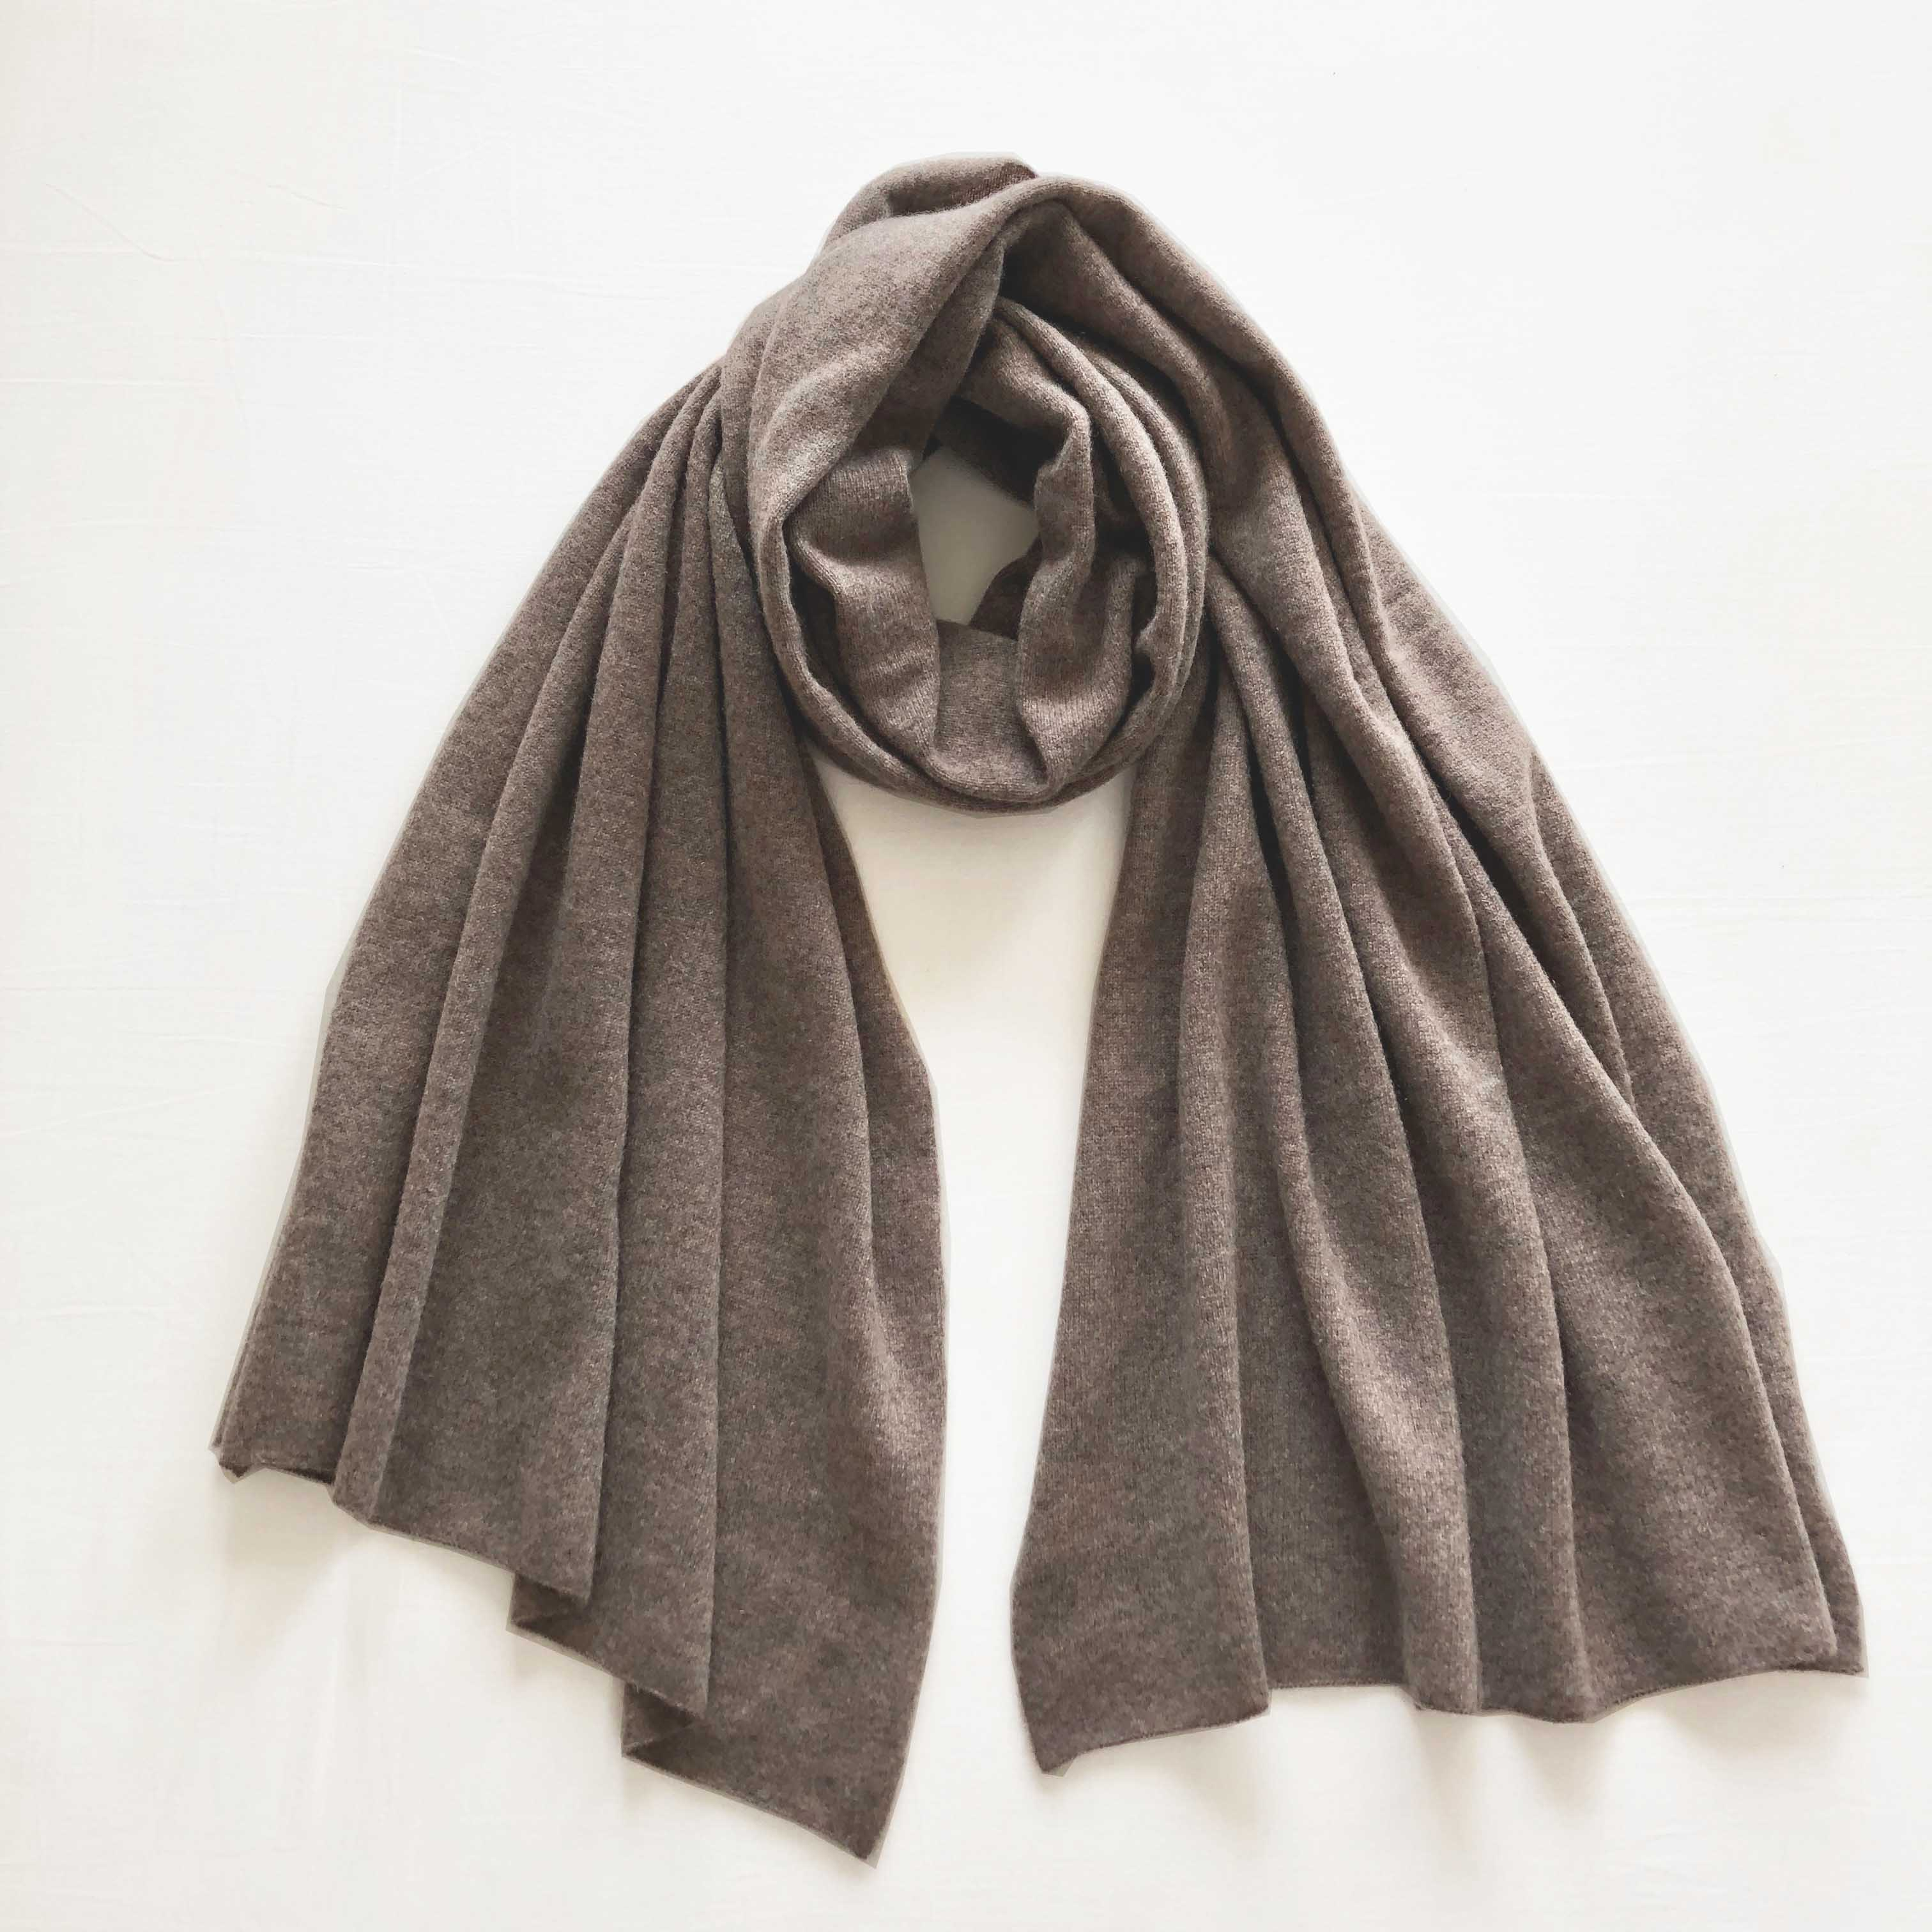 CASHMERE KNIT STOLE LIGHT BROWN